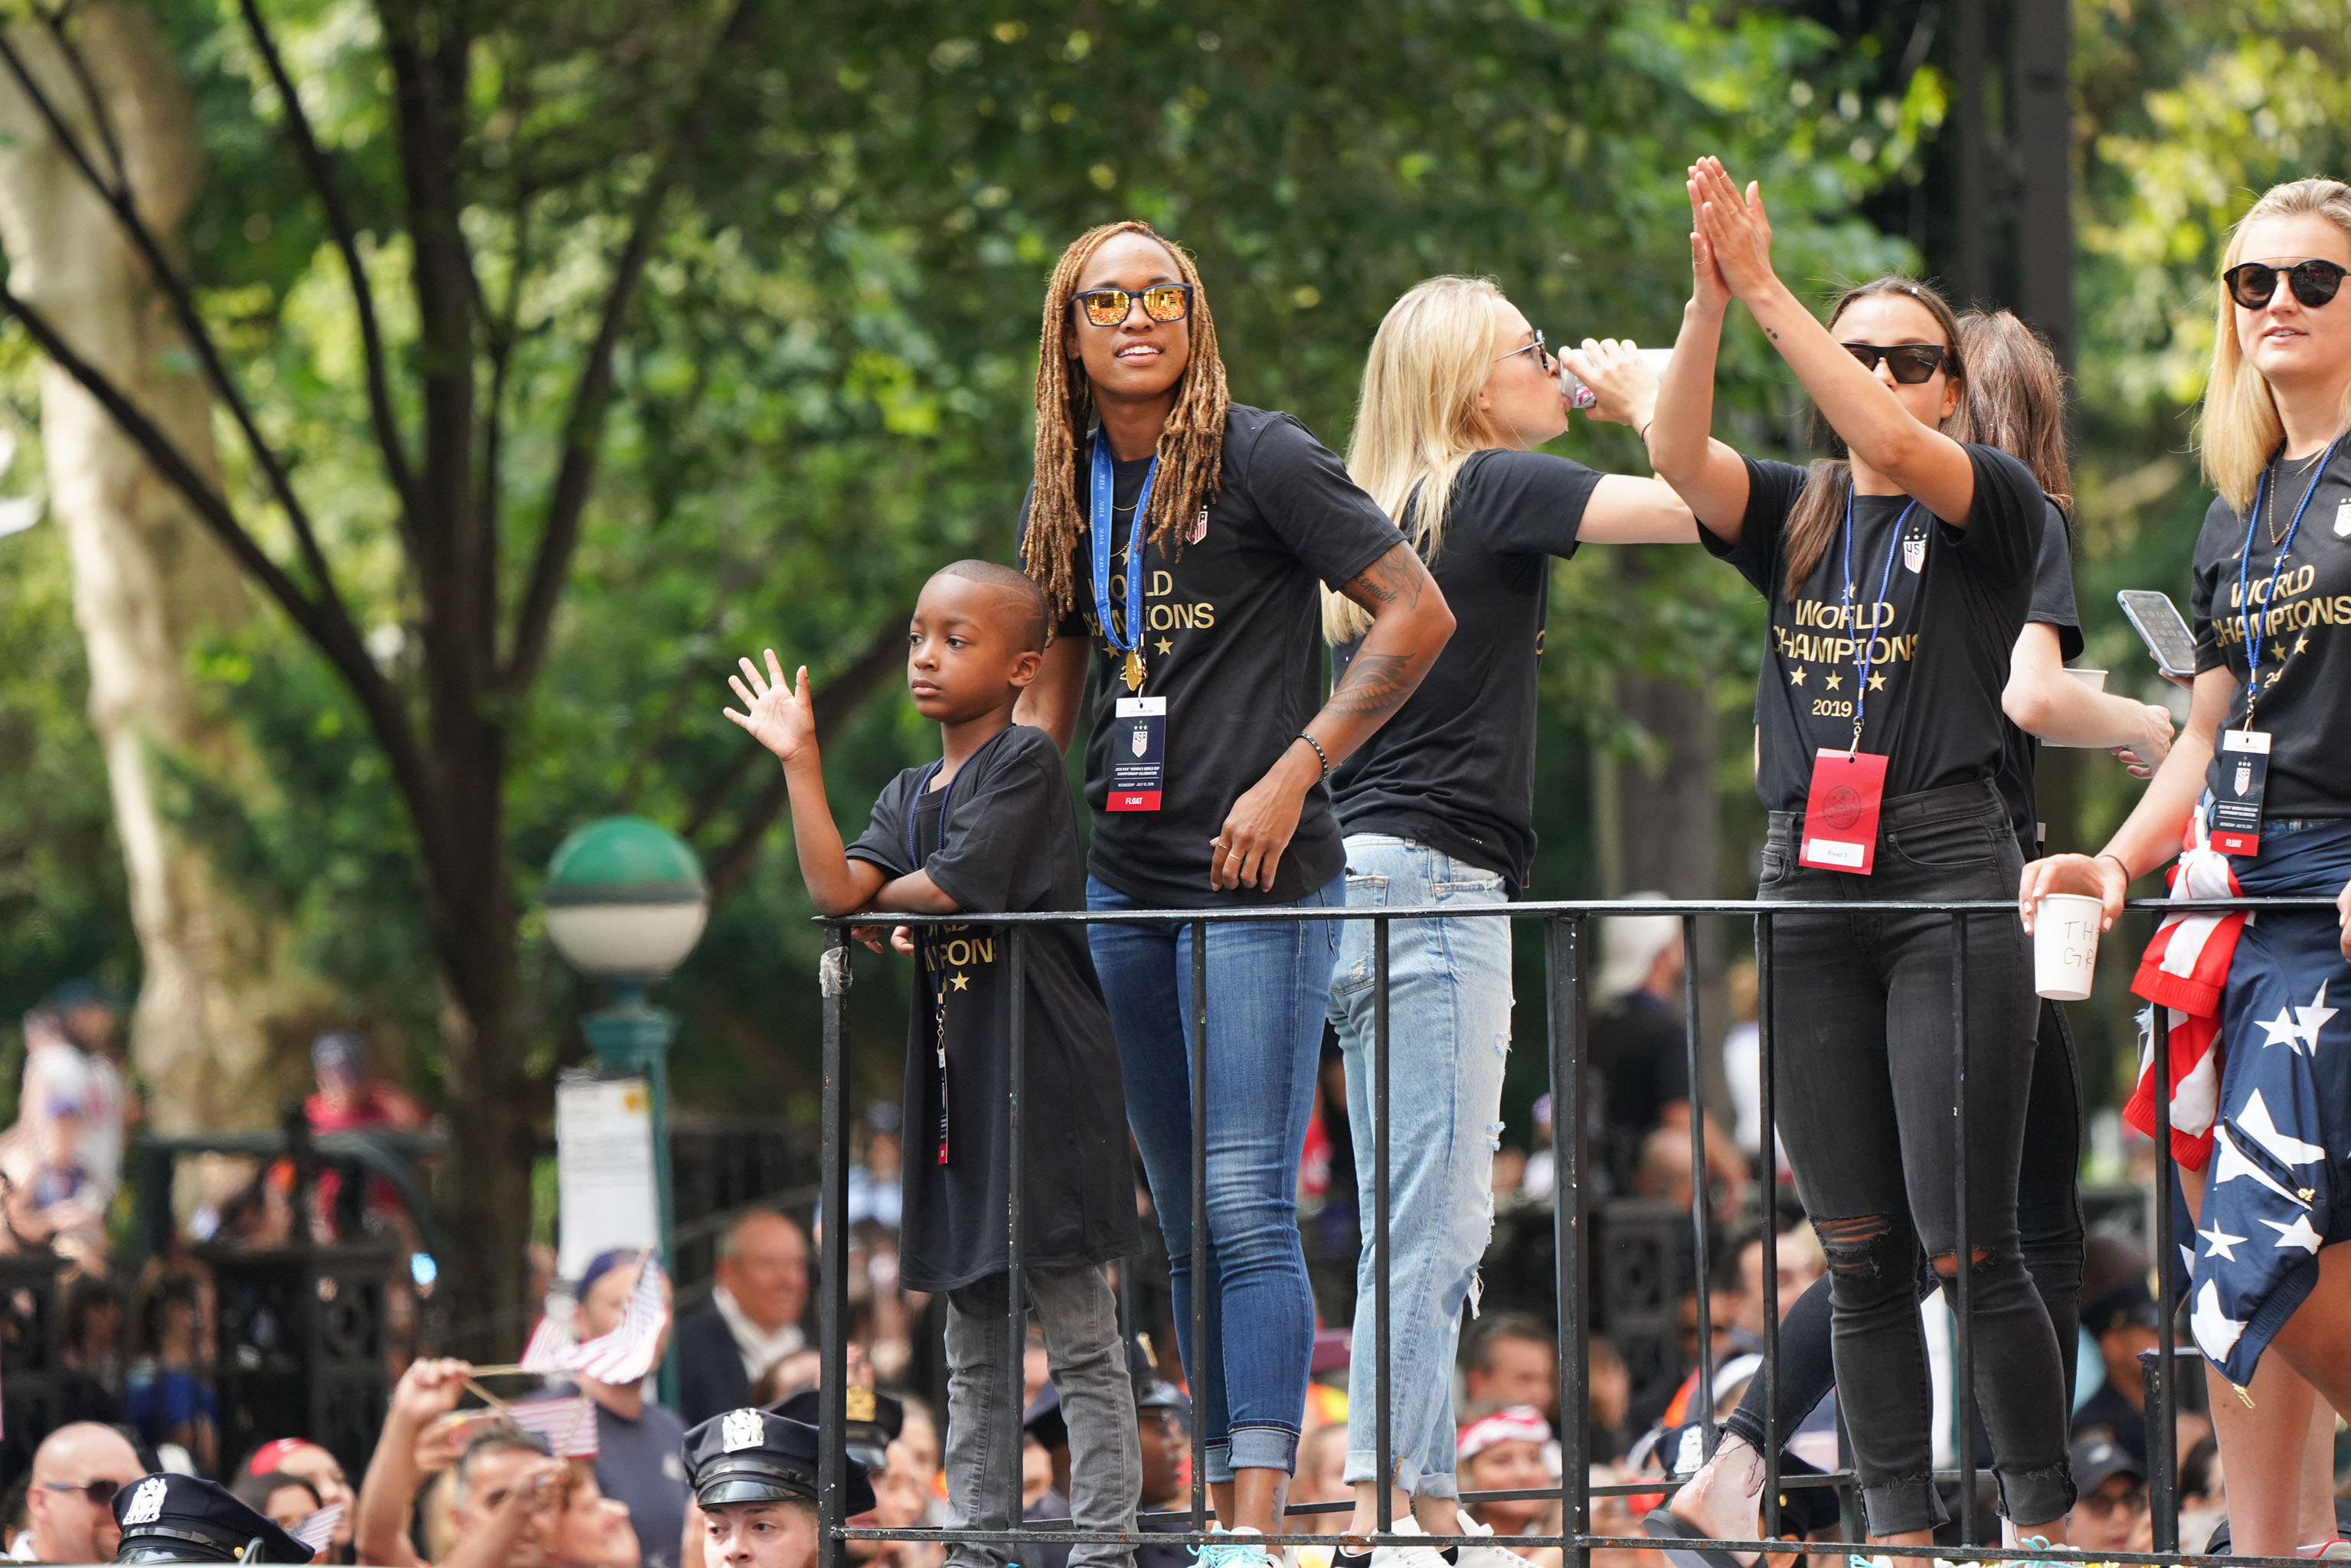 The scene at the Women's World Cup Parade in NYC.